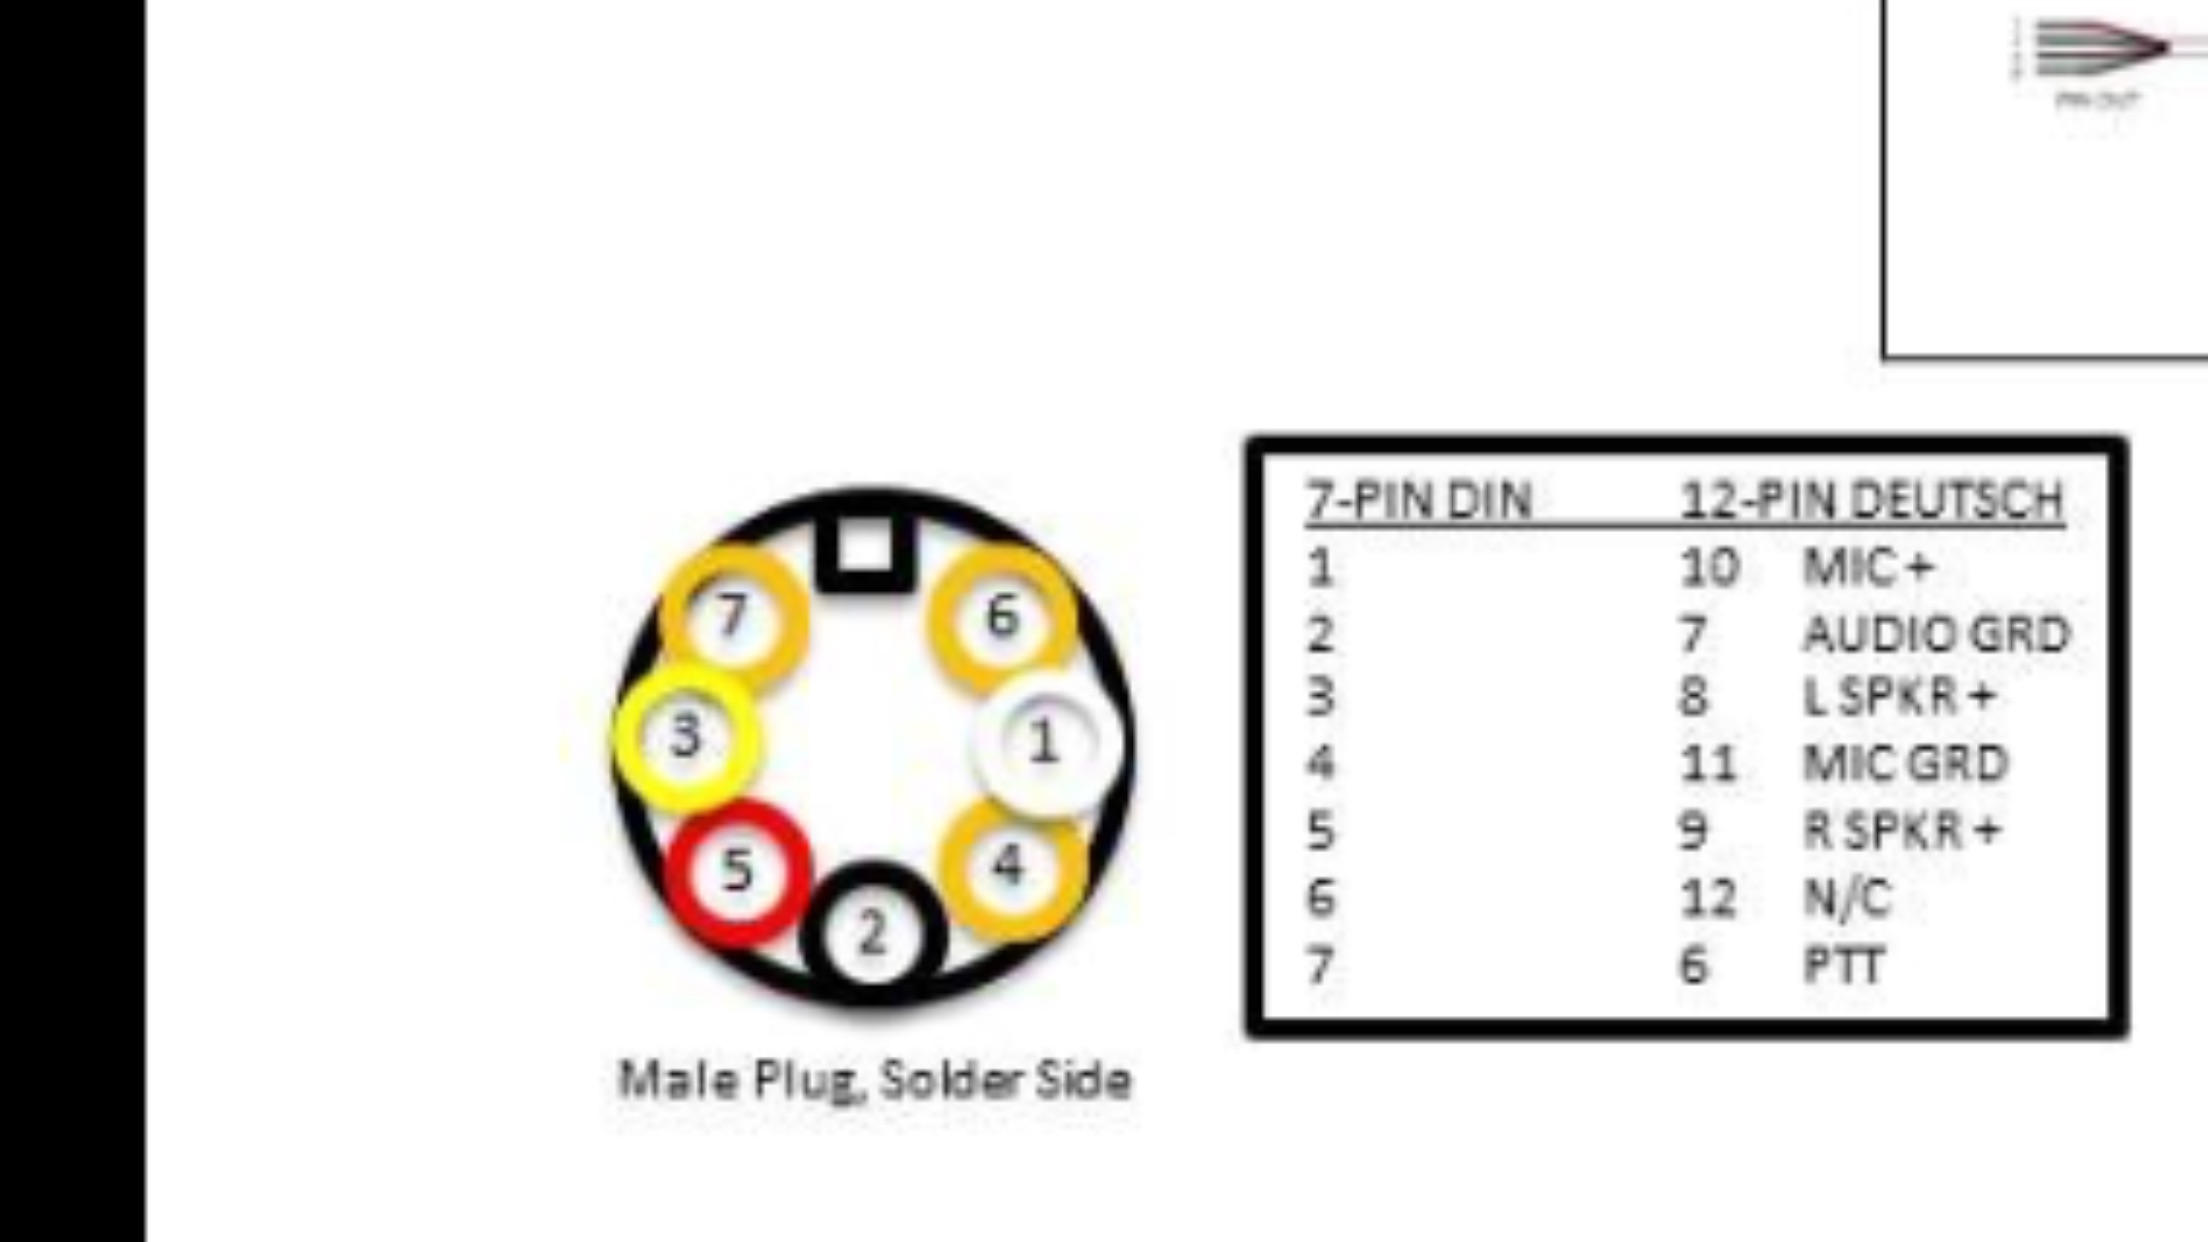 Wiring Diagram For 5 Pin Din Plug